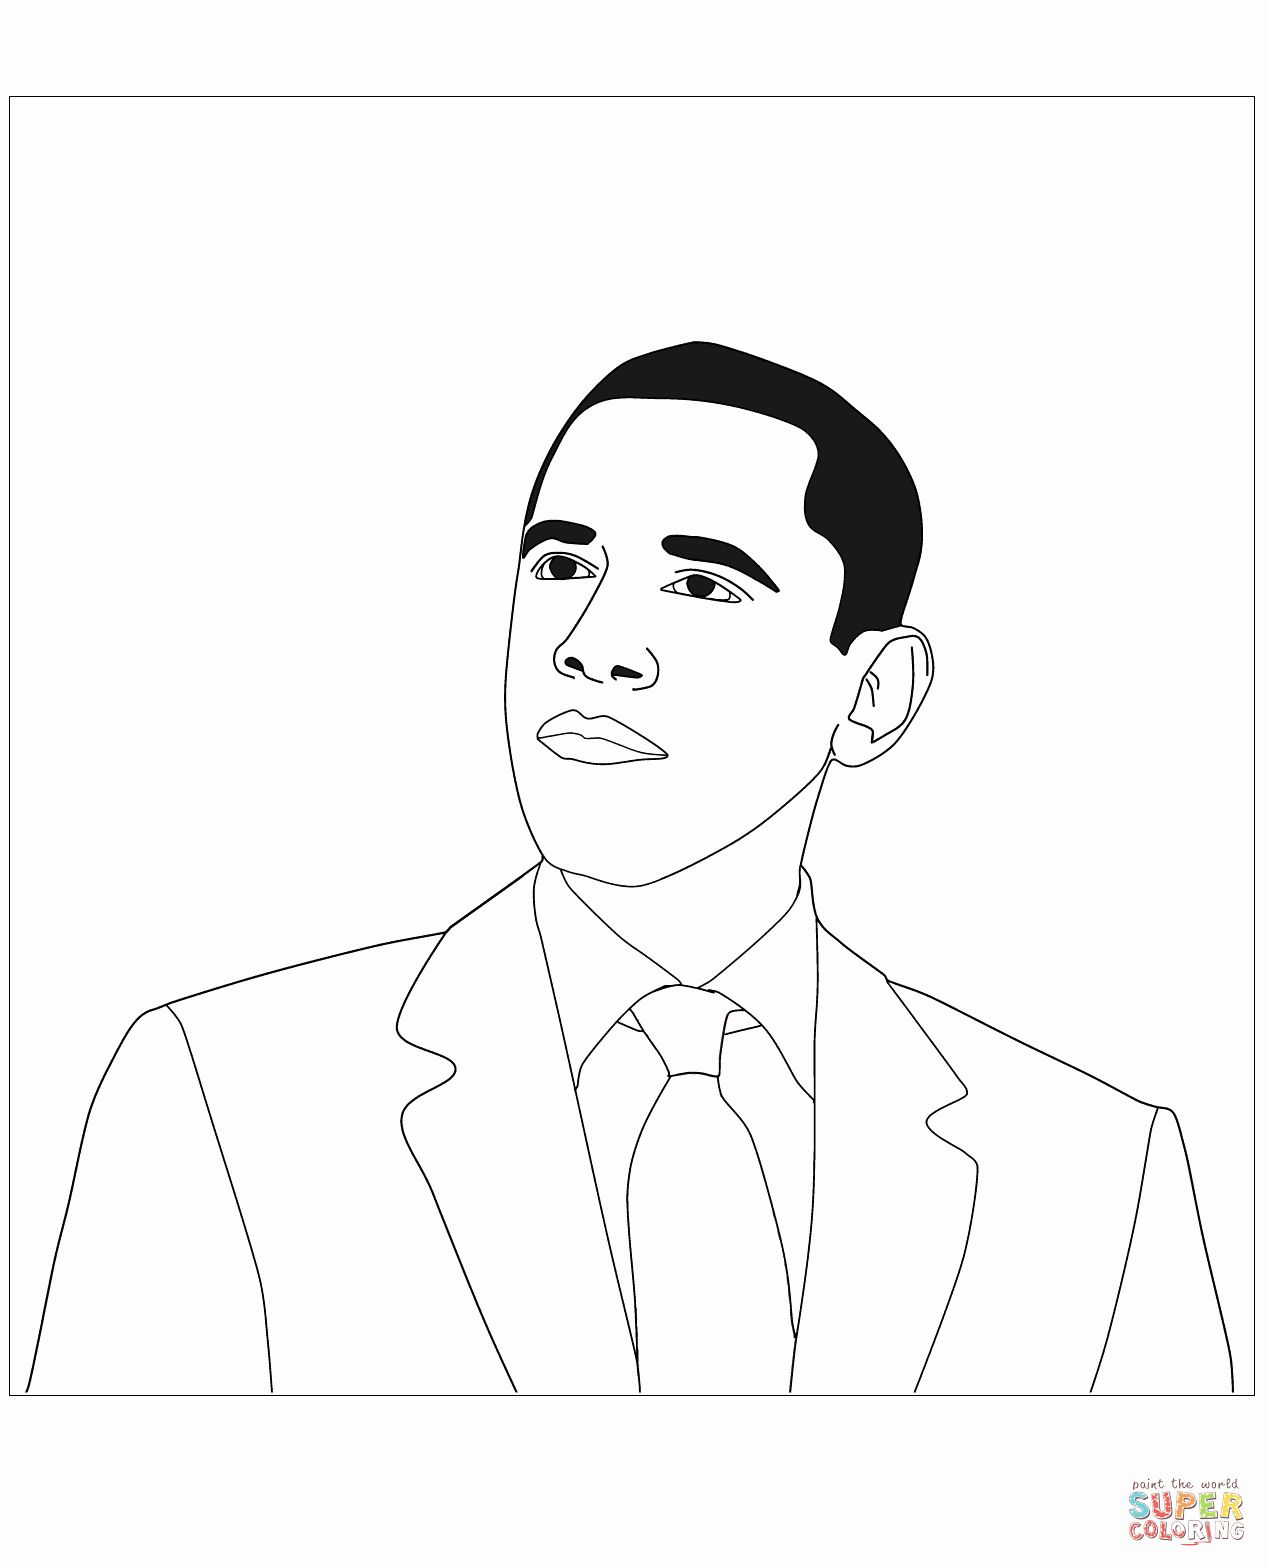 Barack Obama Coloring Page Luxury President Barack Obama Coloring Page Coloring Pages Bear Coloring Pages Angel Coloring Pages